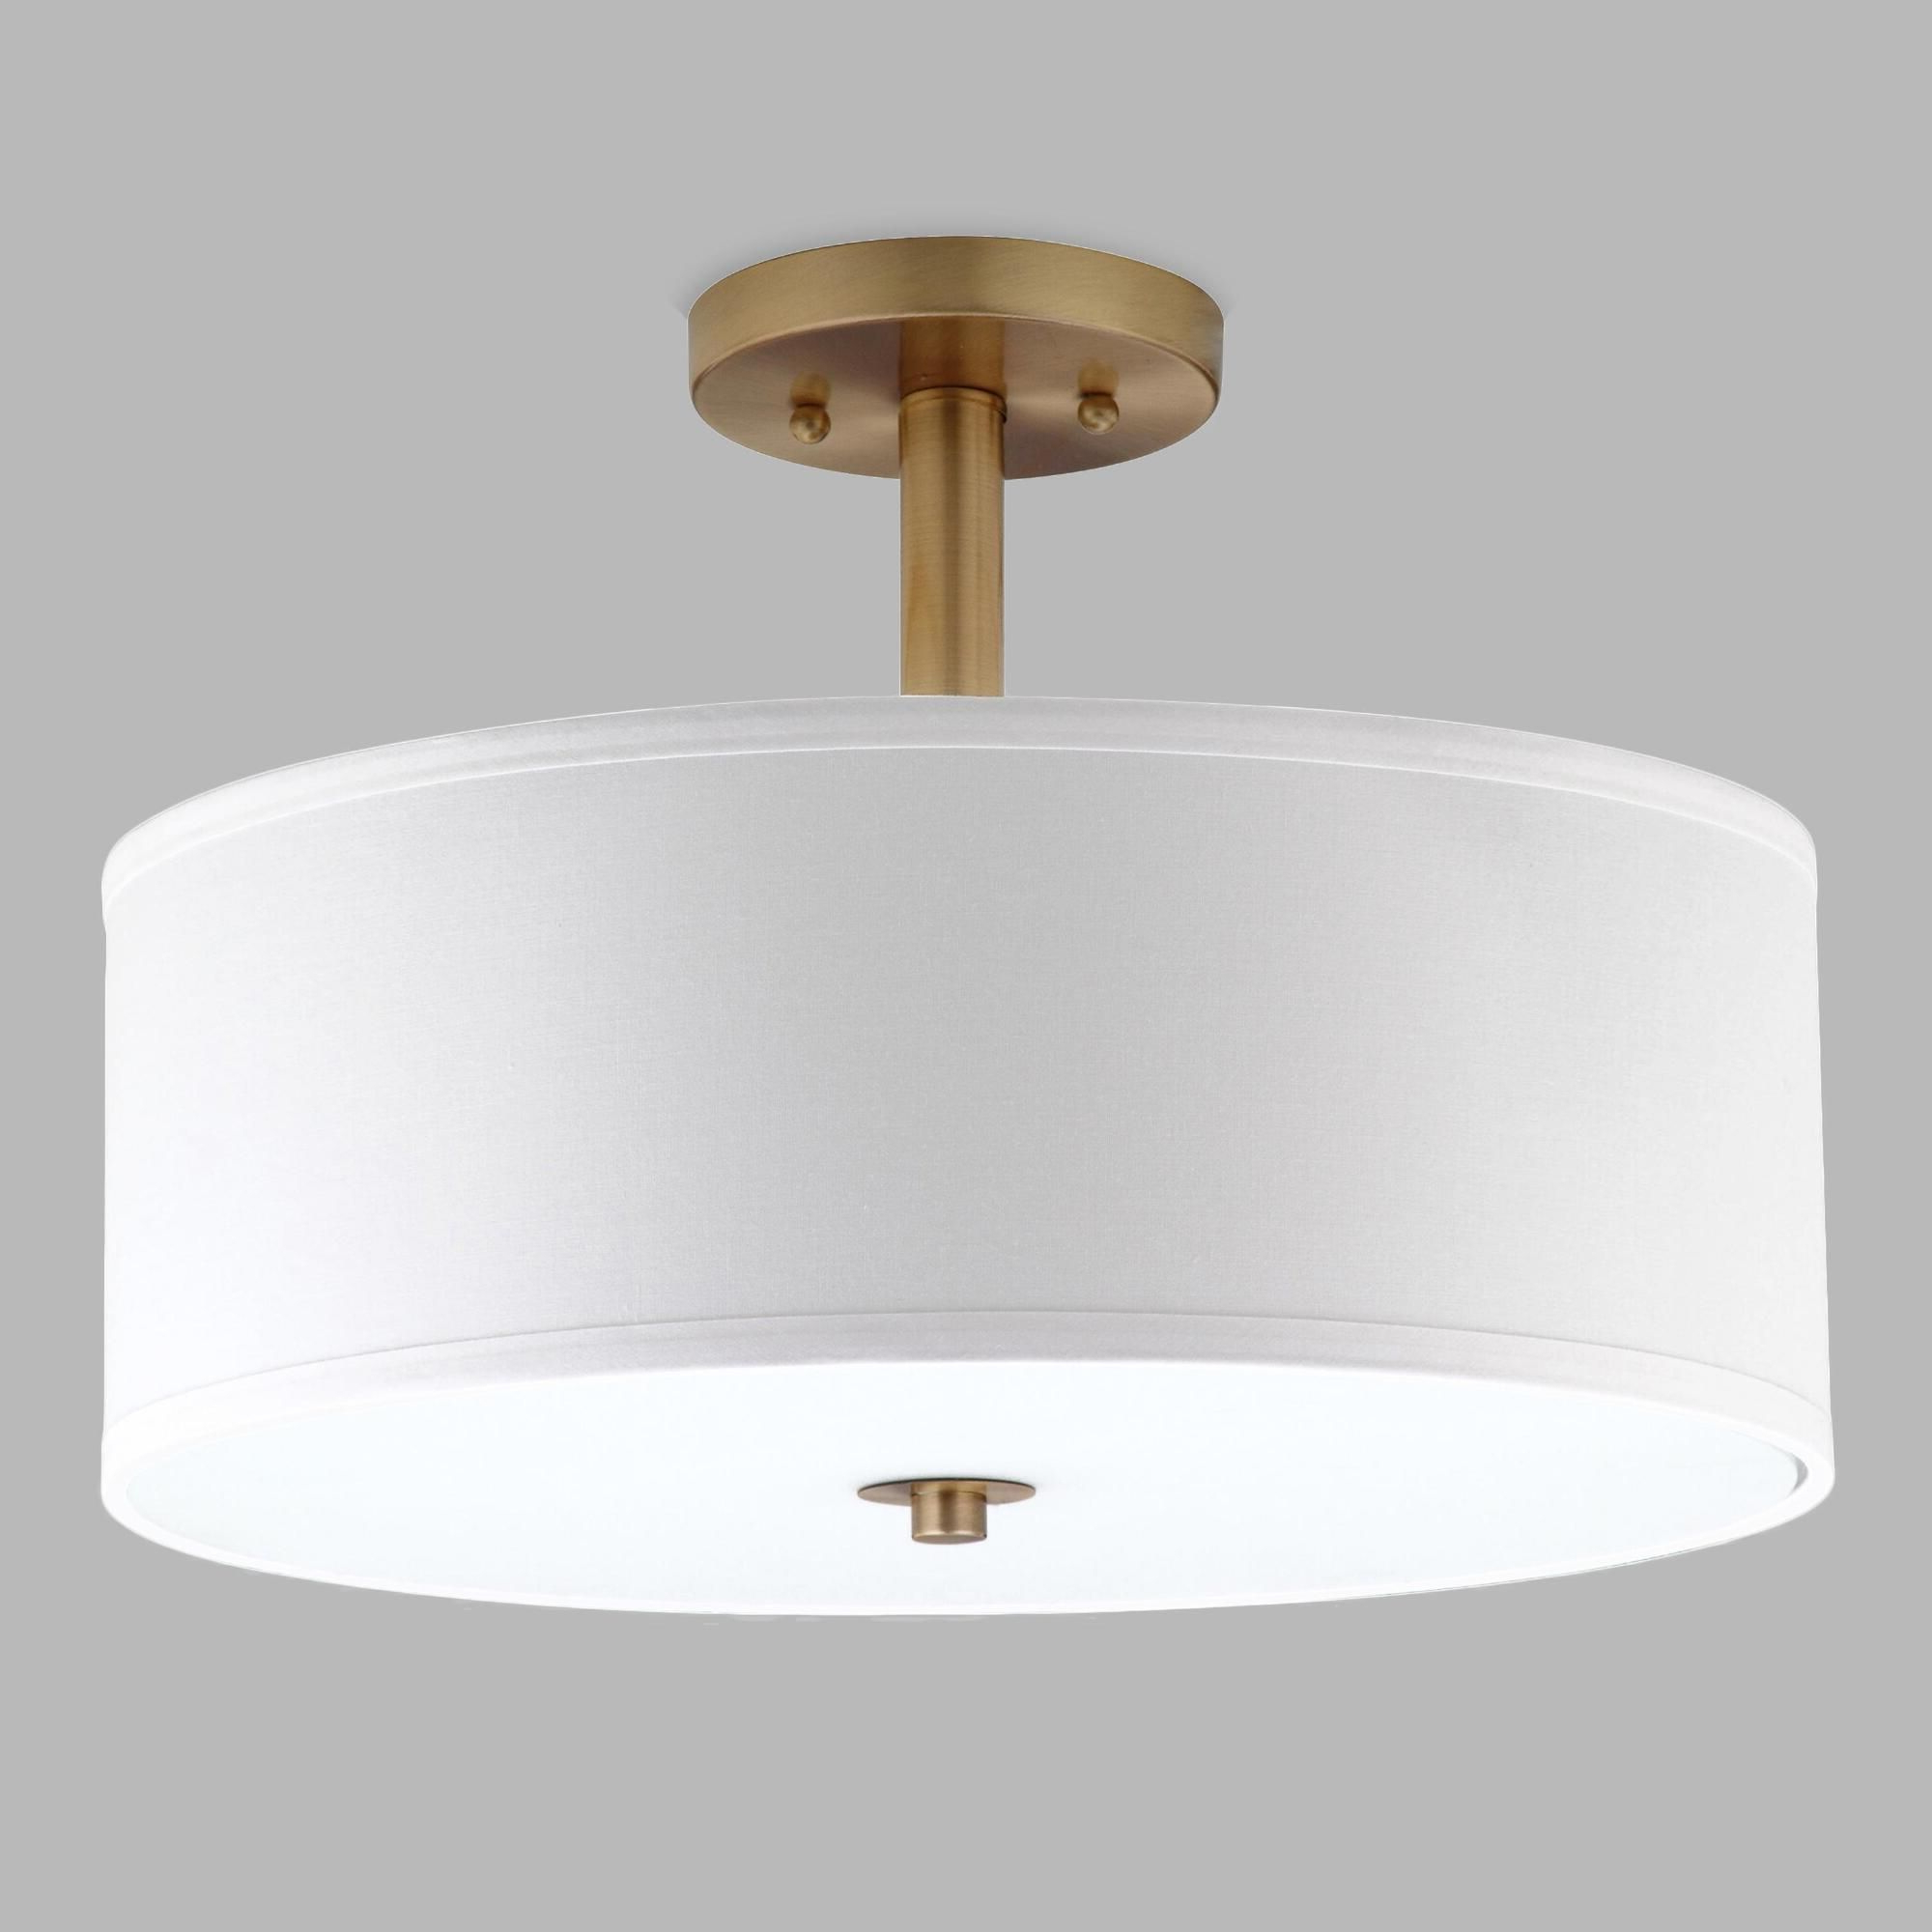 Hermione 1 Light Single Drum Pendants Throughout Famous Gold And White Flush Mount Alysian Ceiling Light: Metallic (View 25 of 25)